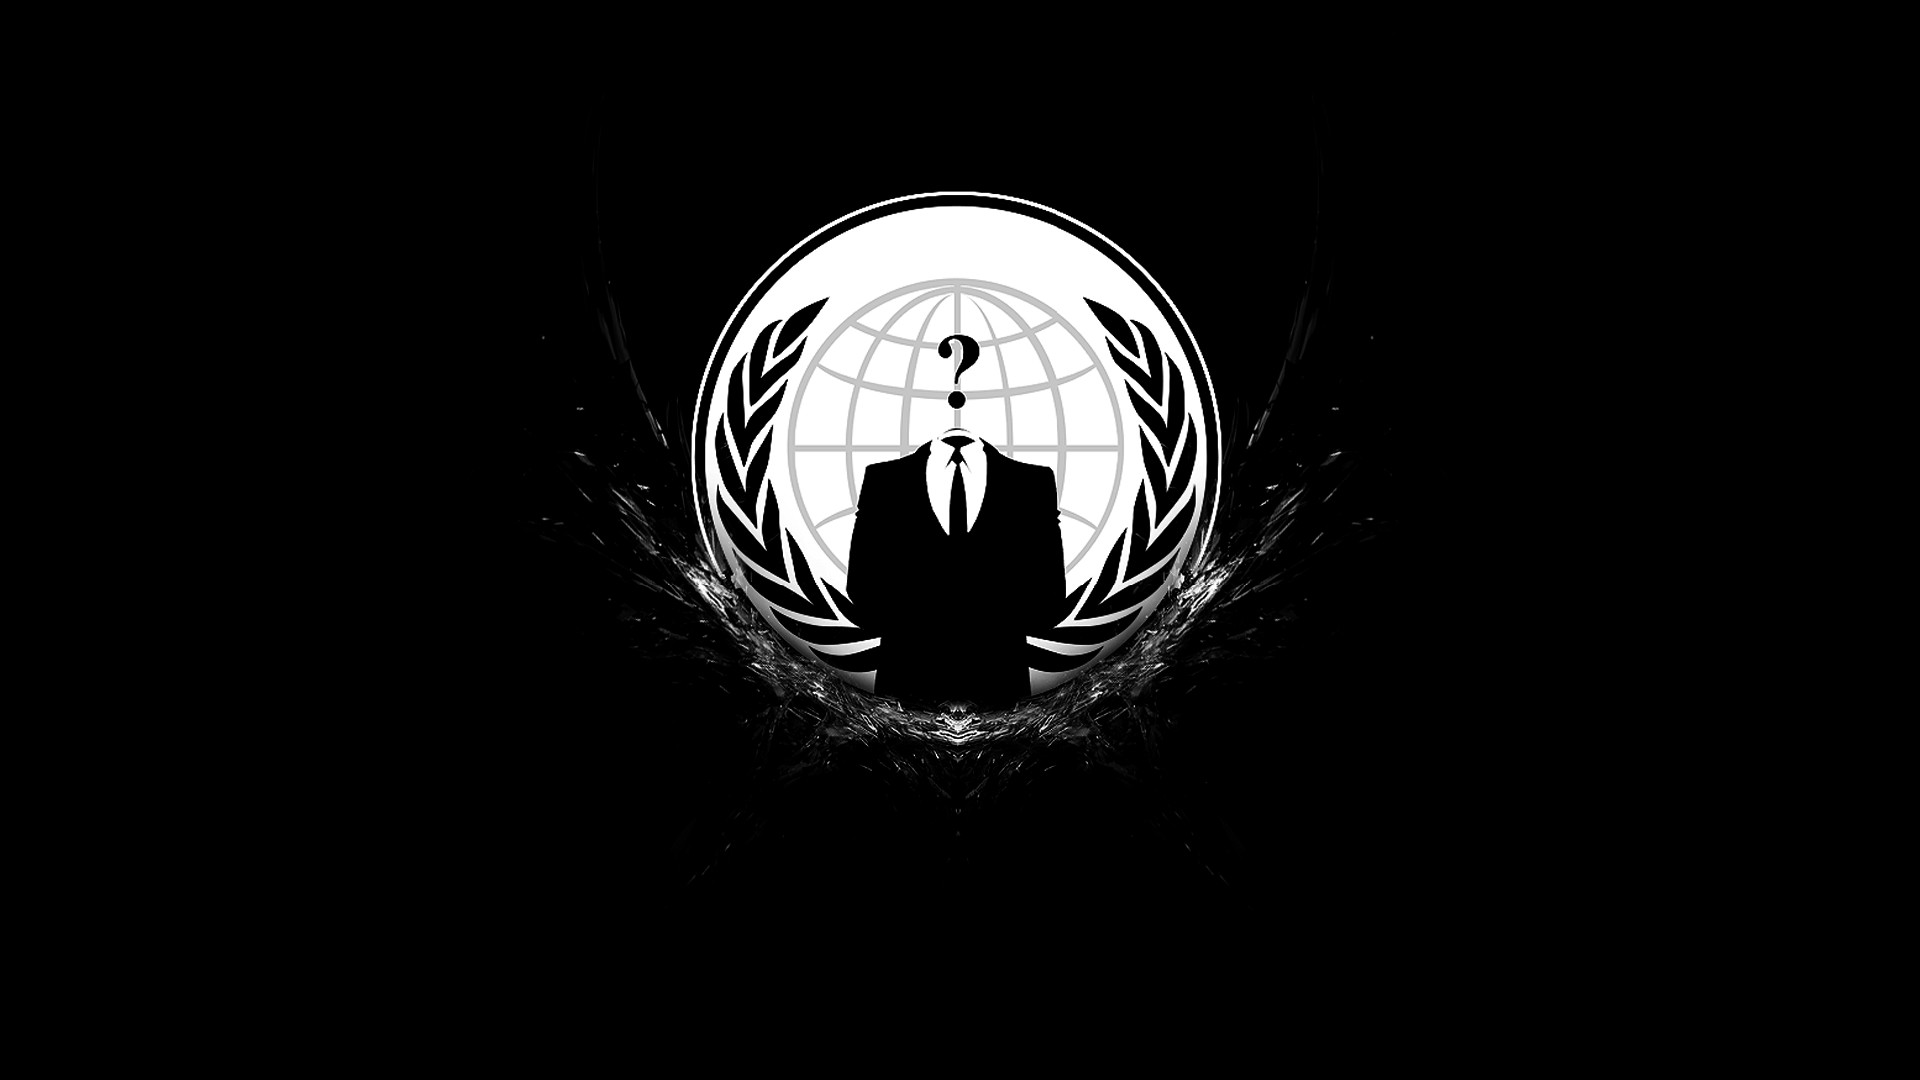 Anonymous Hacker Wallpaper Hd Wallpapers anonymous hacker curious